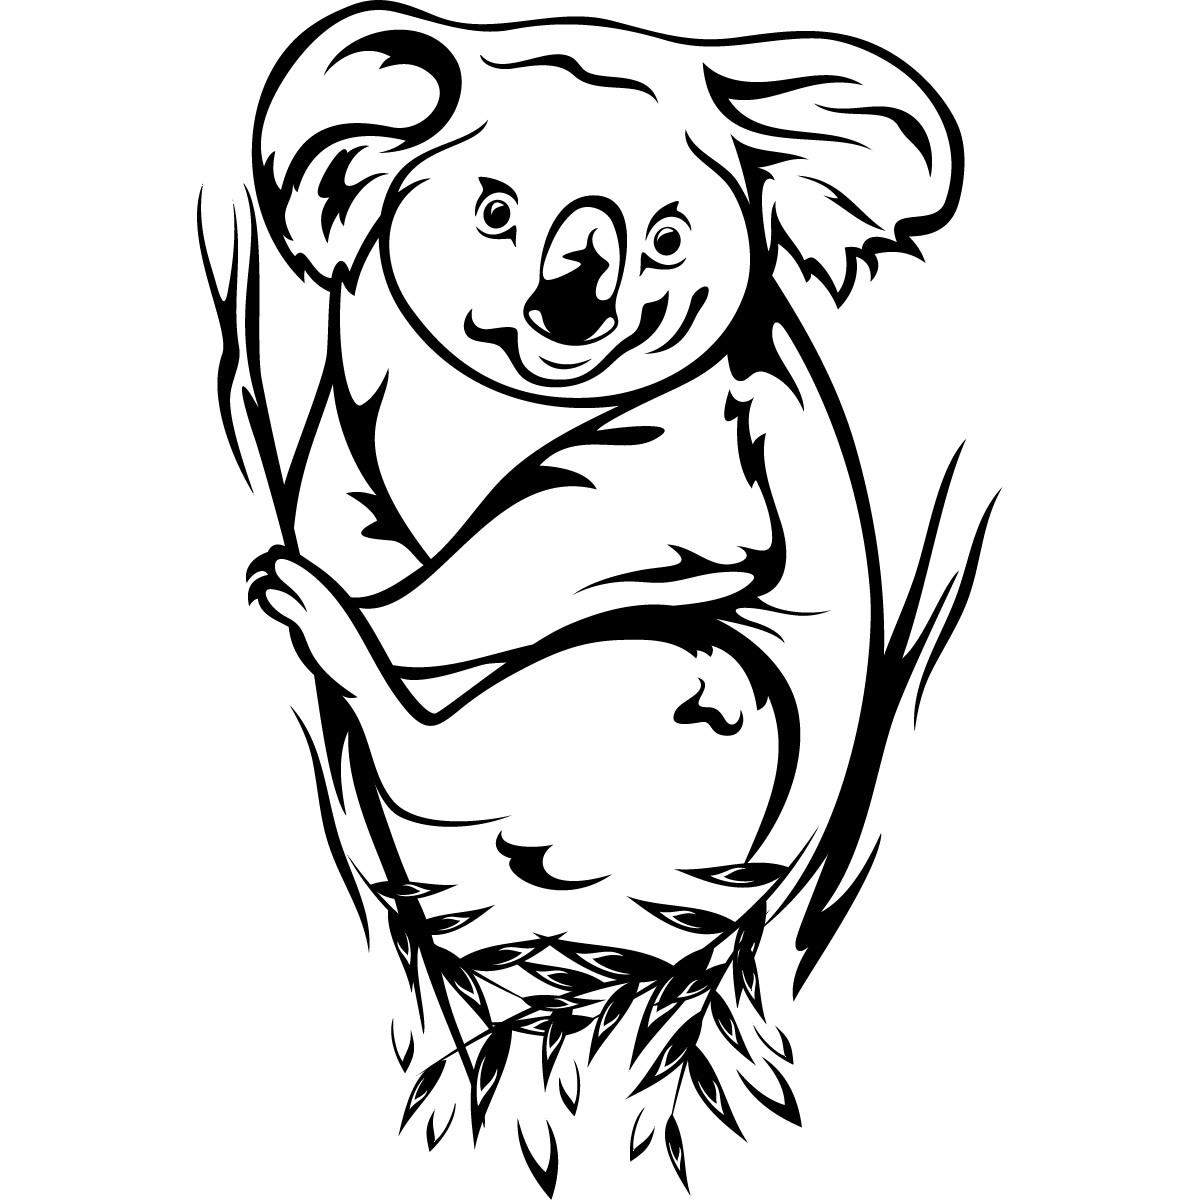 Koala black and white clipart kid.